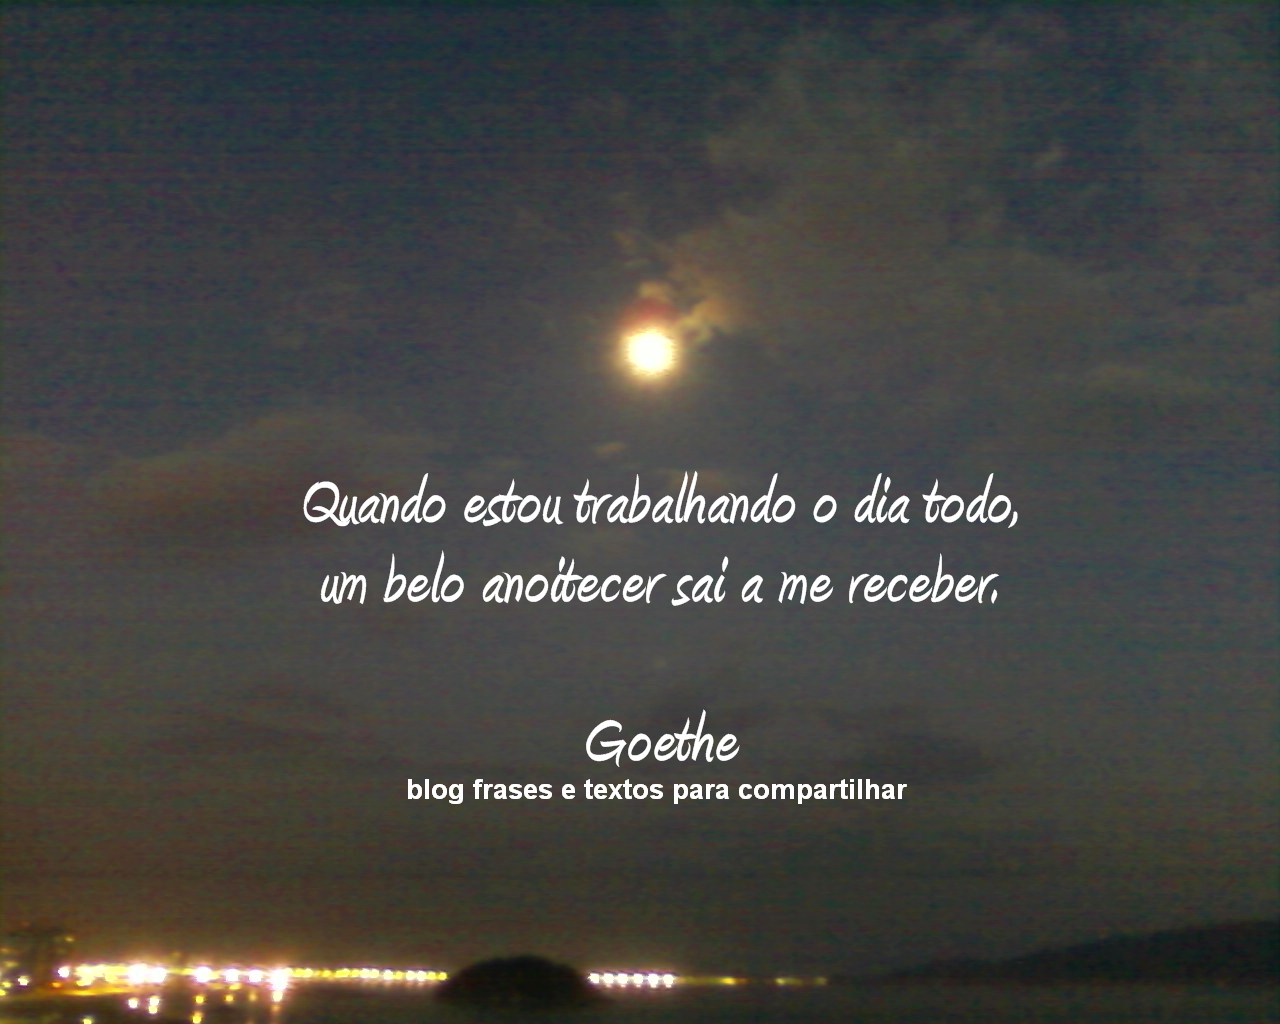 Fotos E Frases De Boa Noite 5 Quotes Links